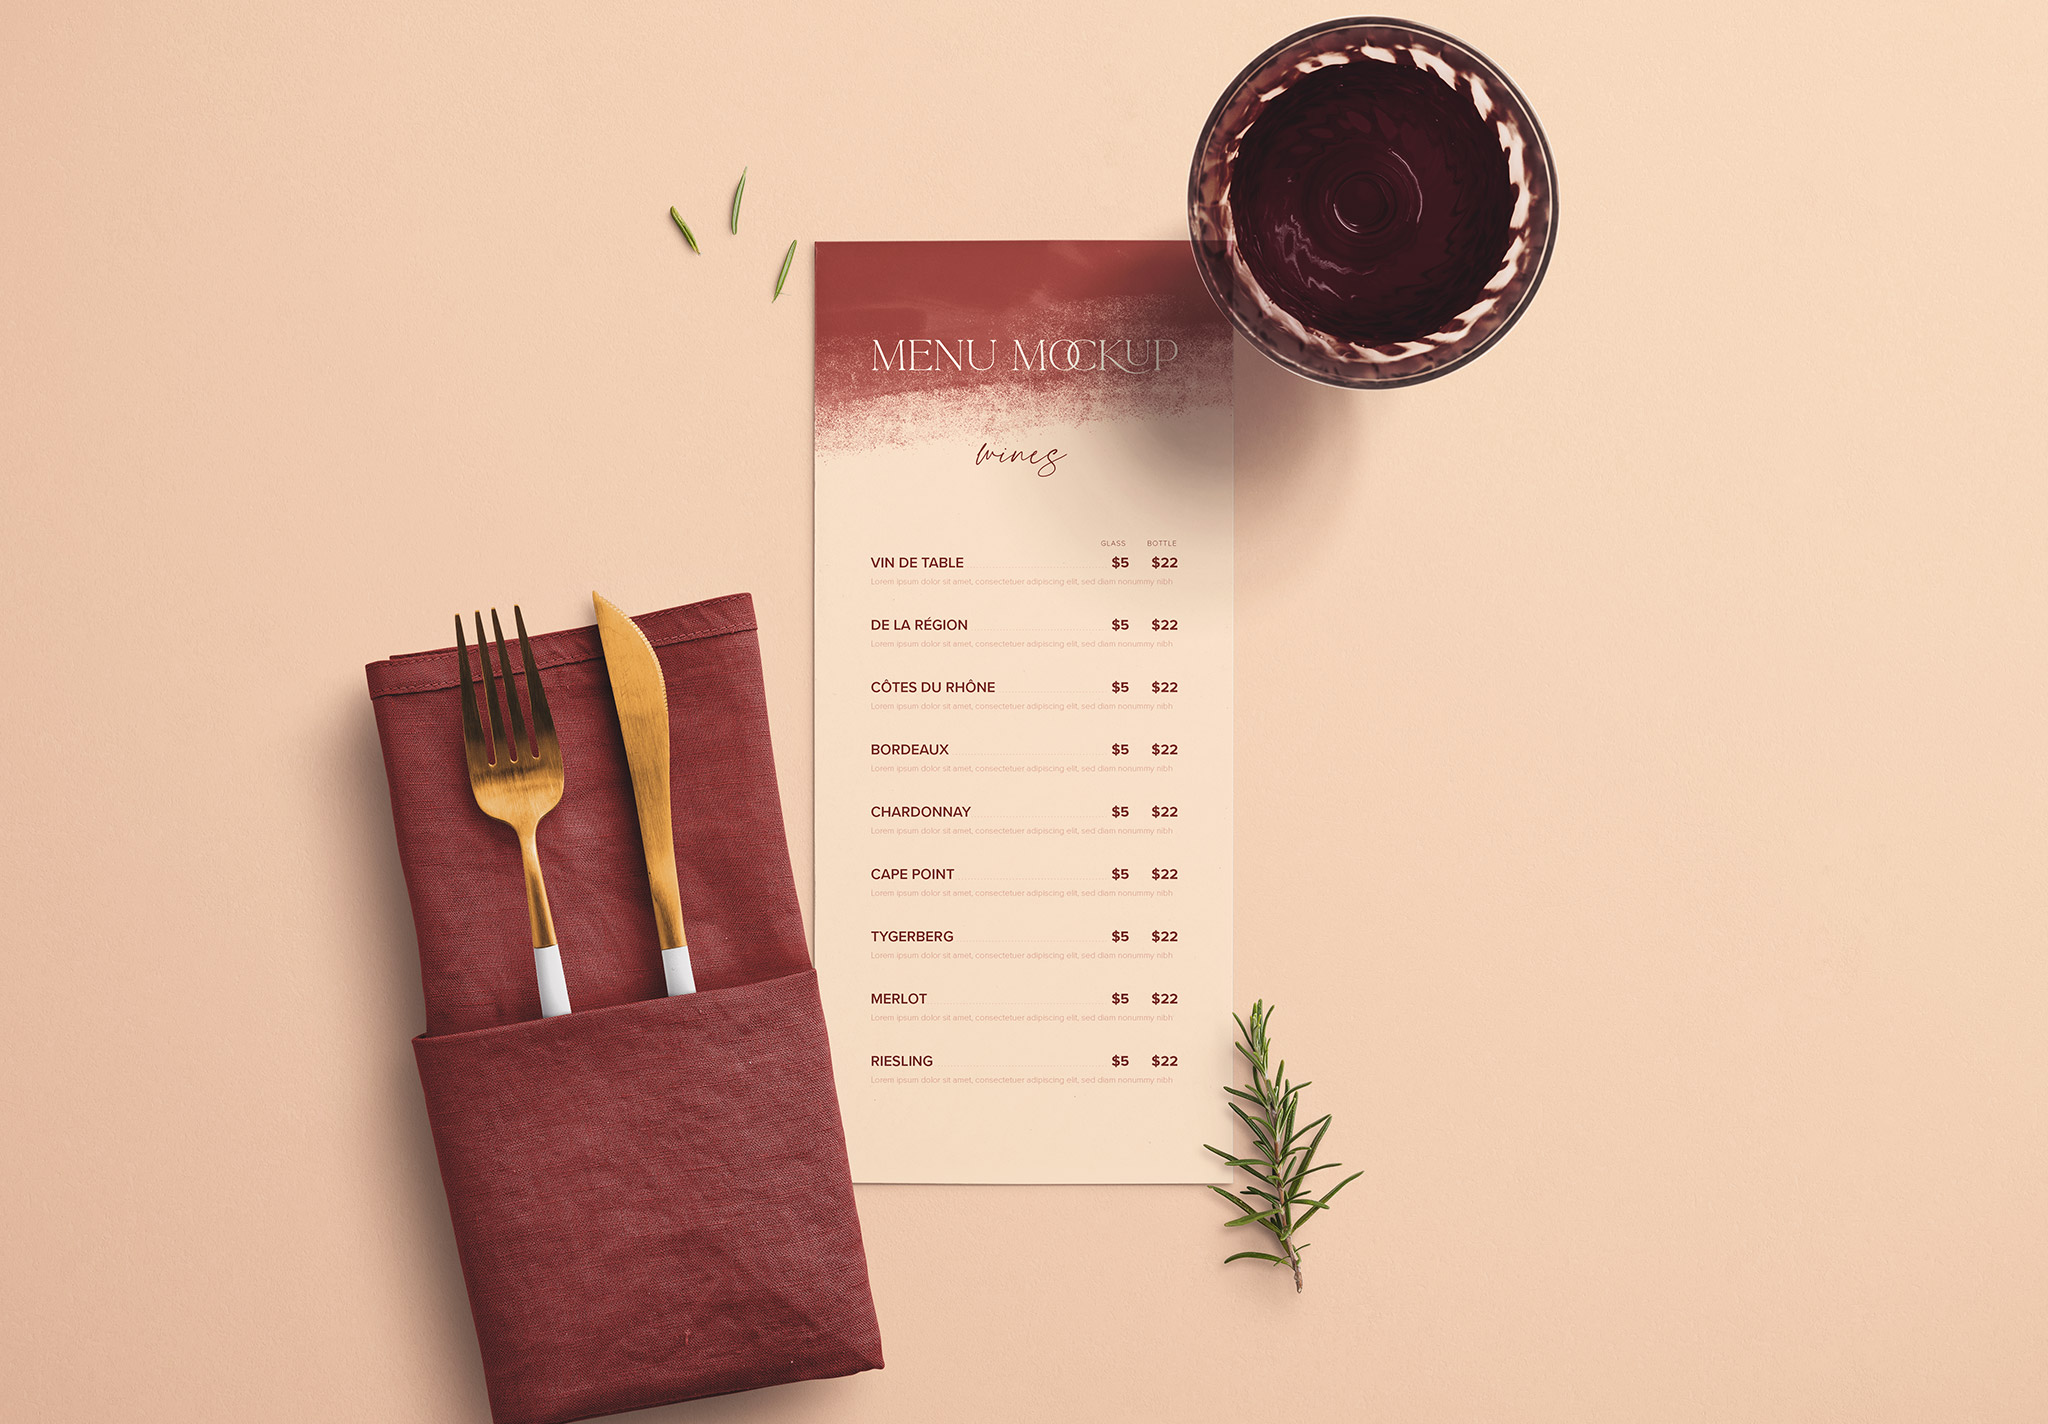 Table 4x9in Menu with Cutleries Napkin Drink and Herbs image03